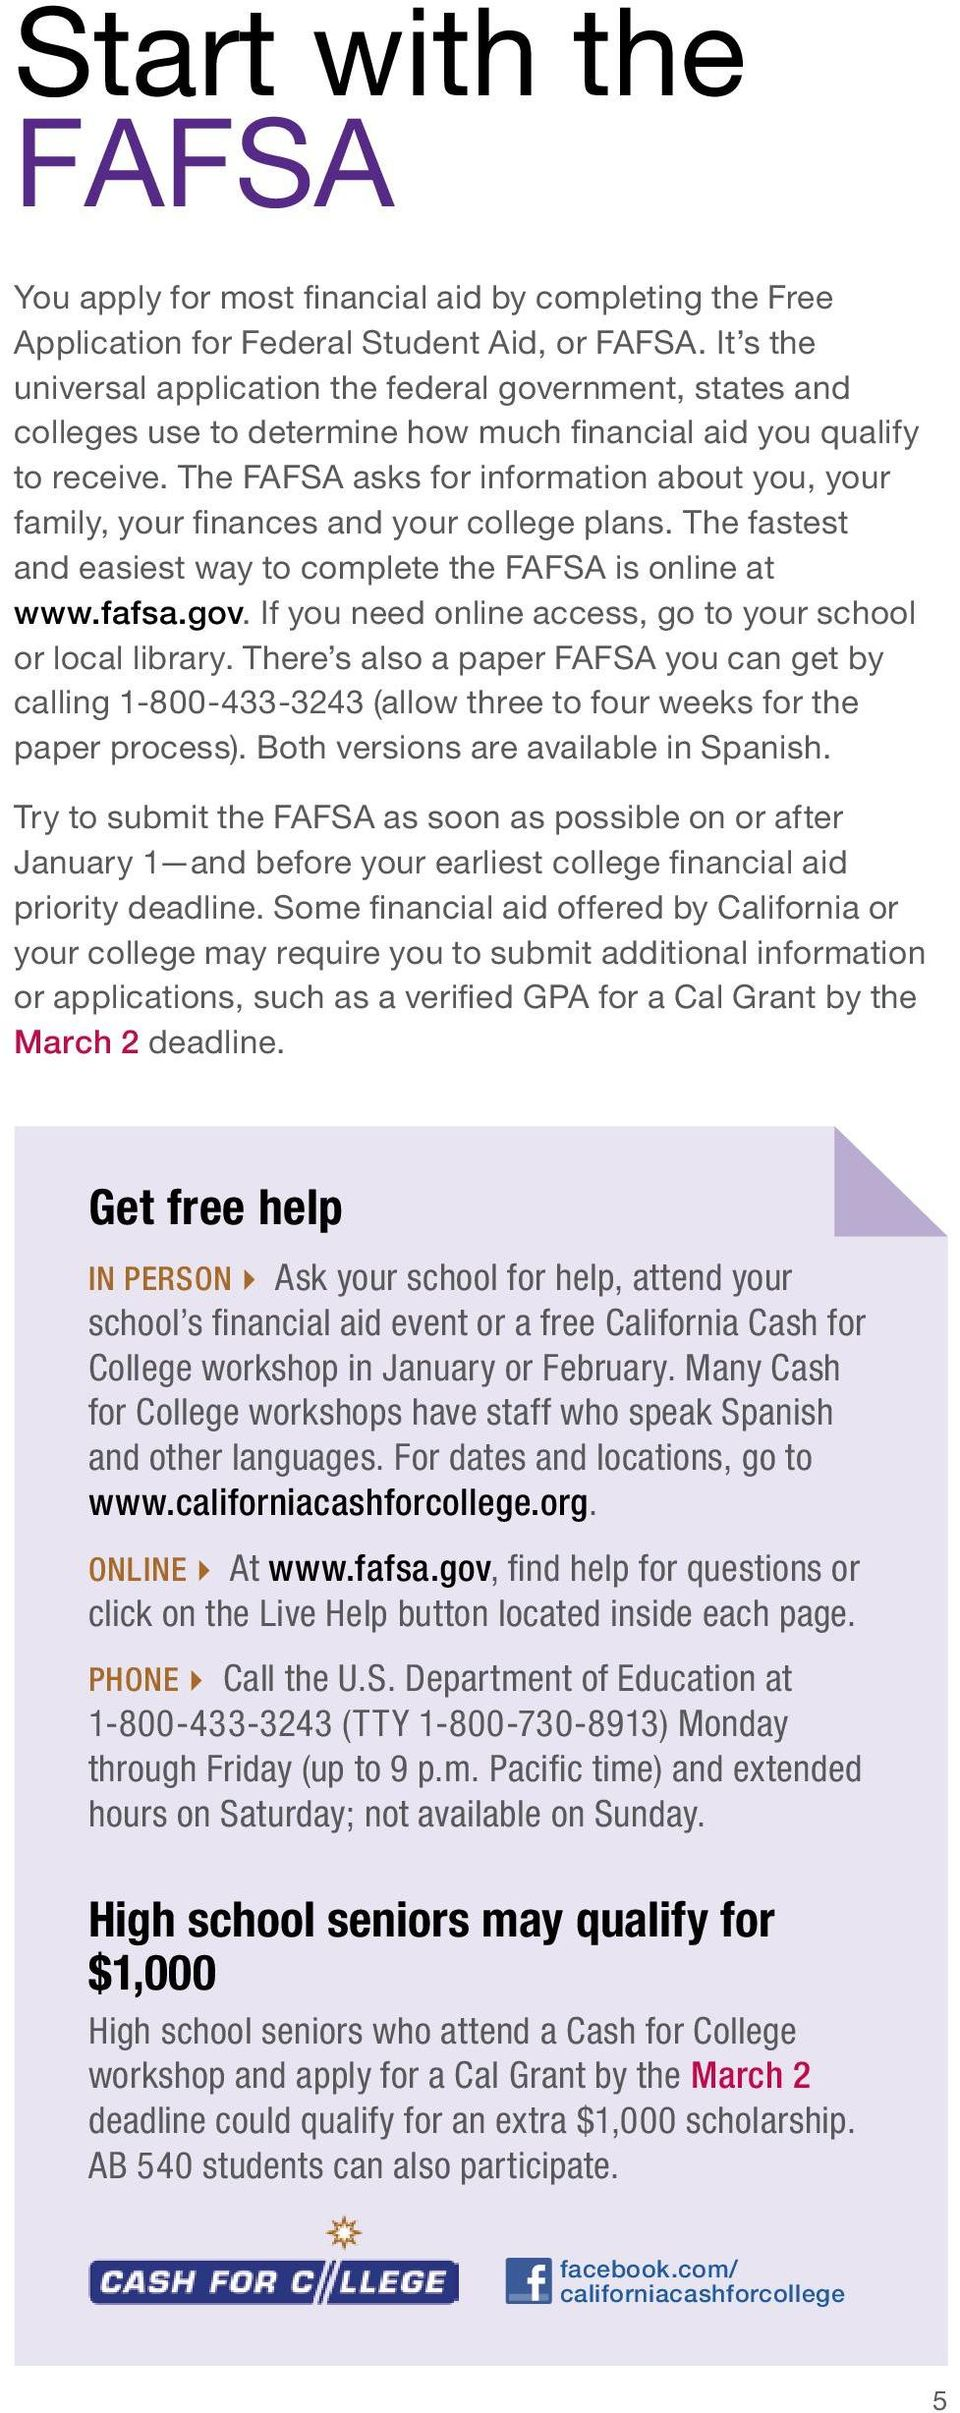 The FAFSA asks for information about you, your family, your finances and your college plans. The fastest and easiest way to complete the FAFSA is online at www.fafsa.gov.